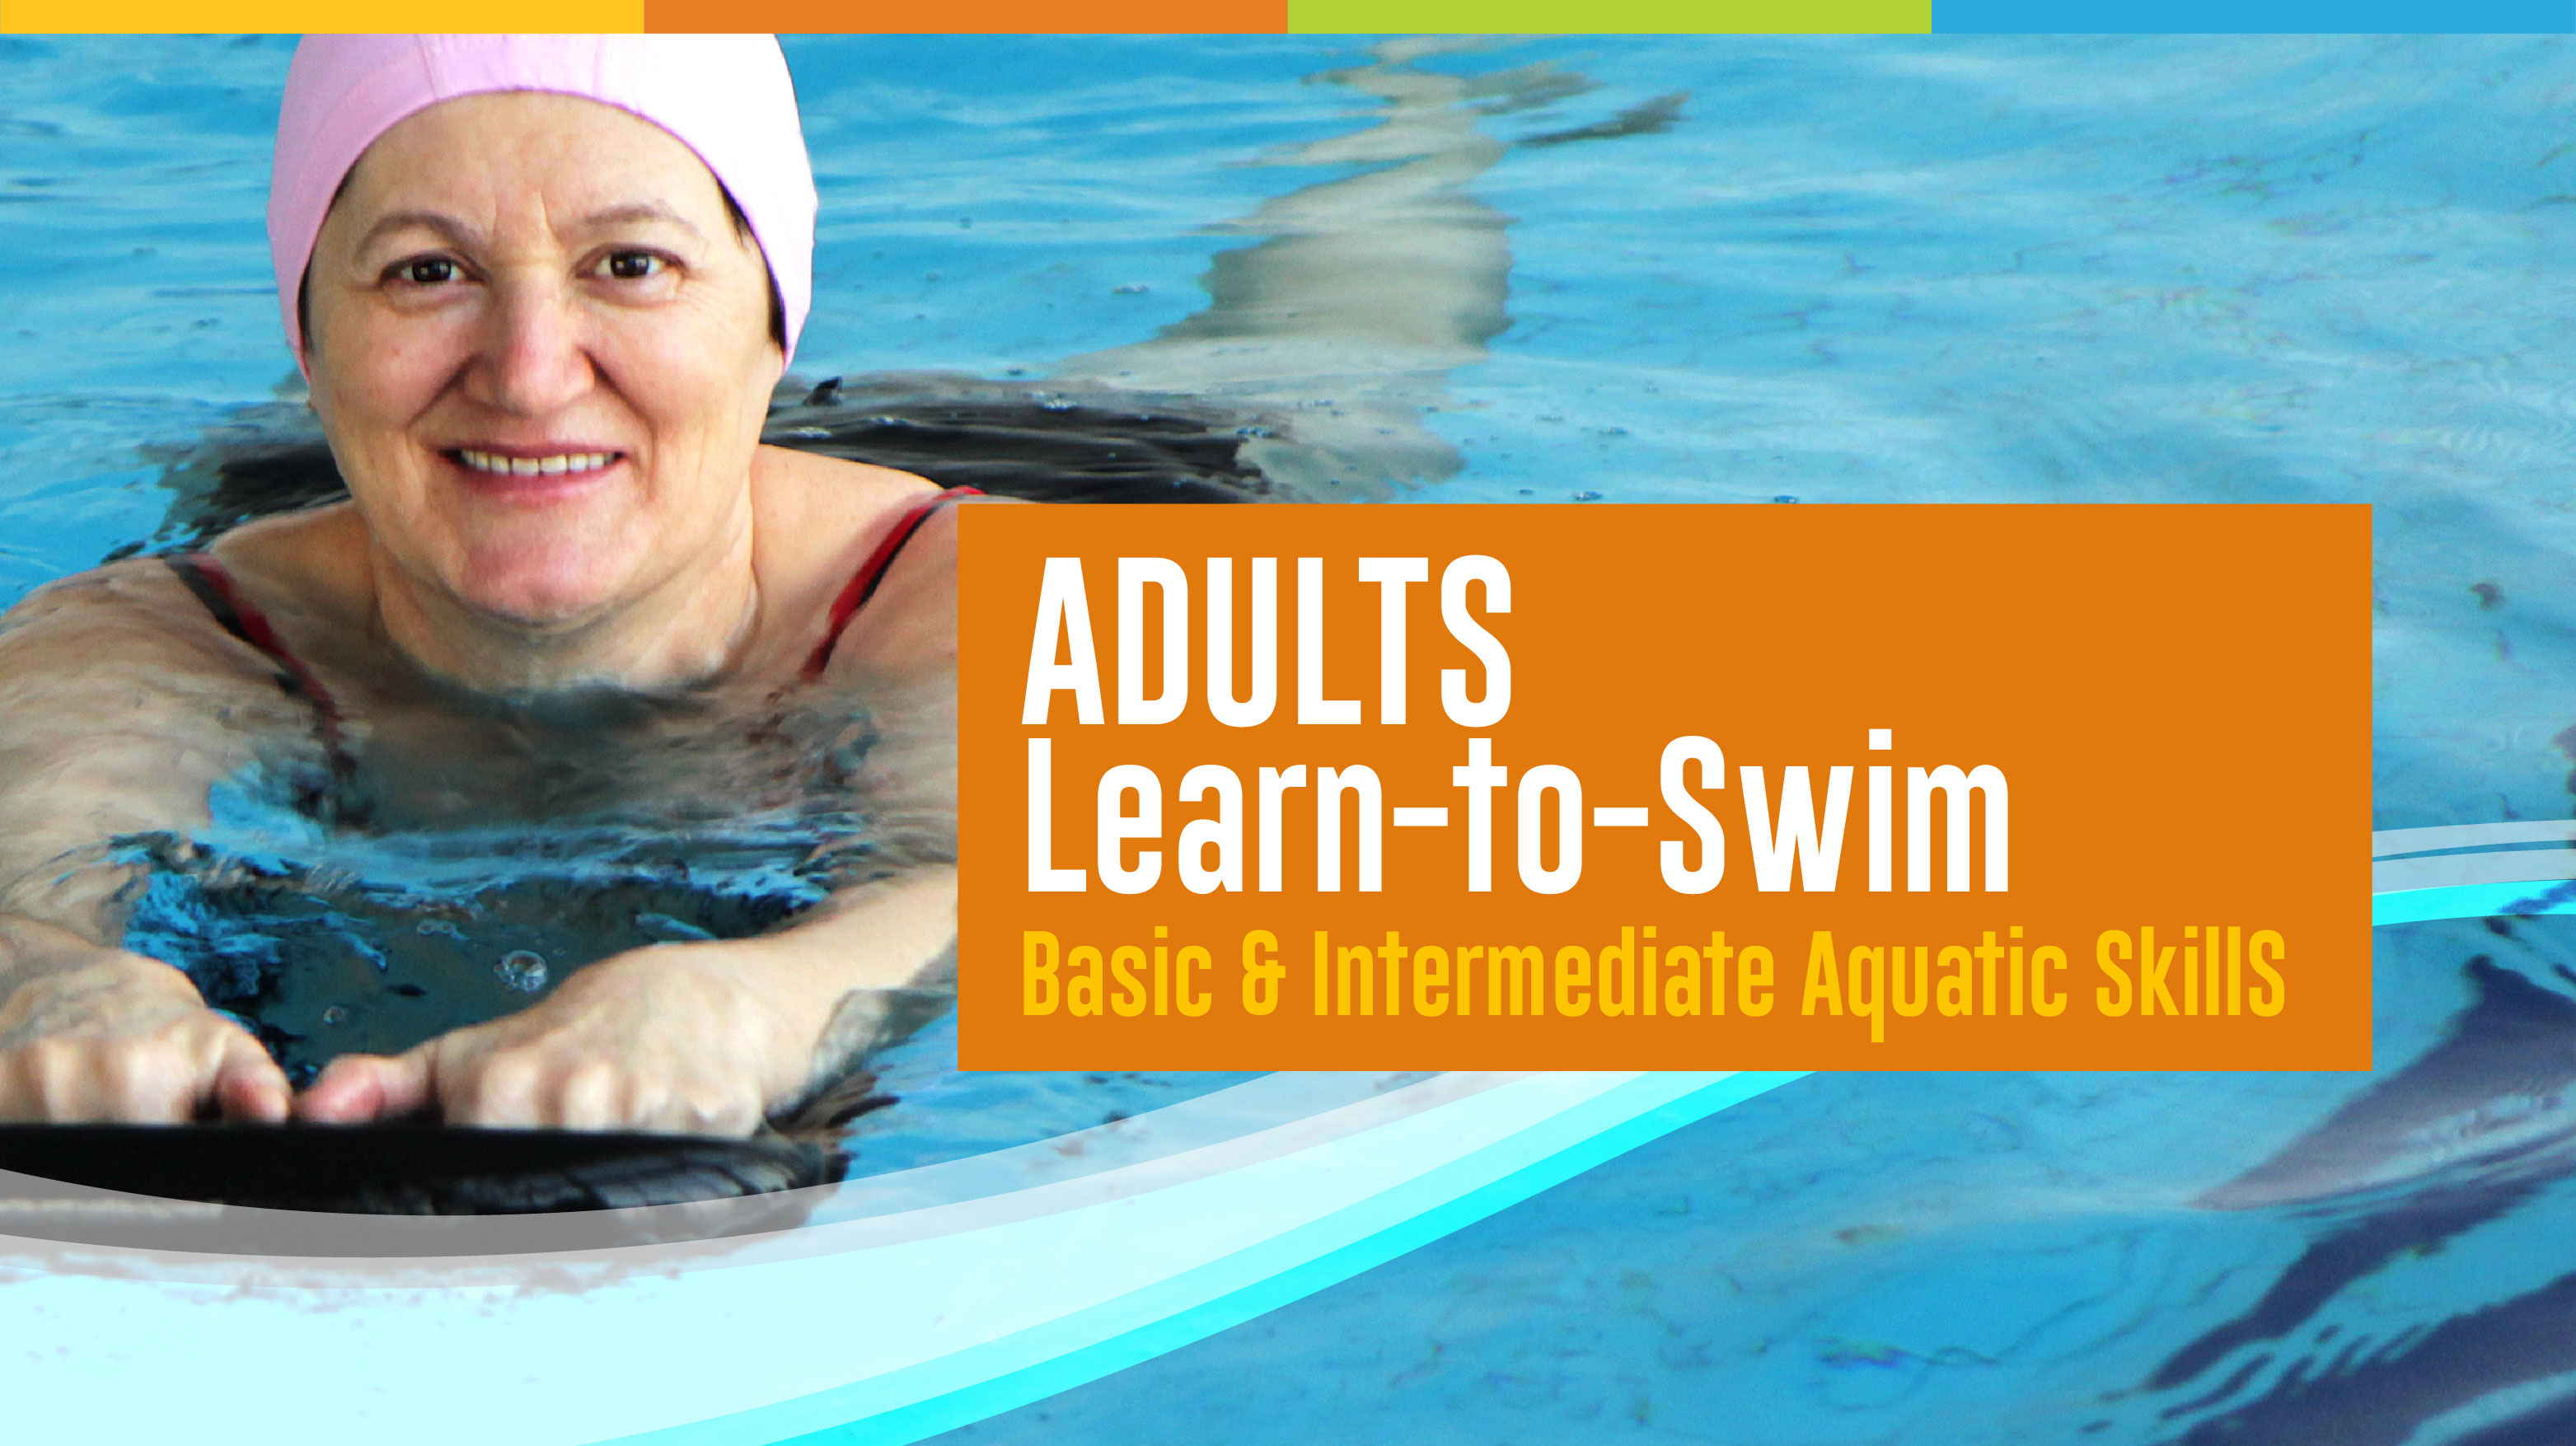 Adult Learn-to-Swim